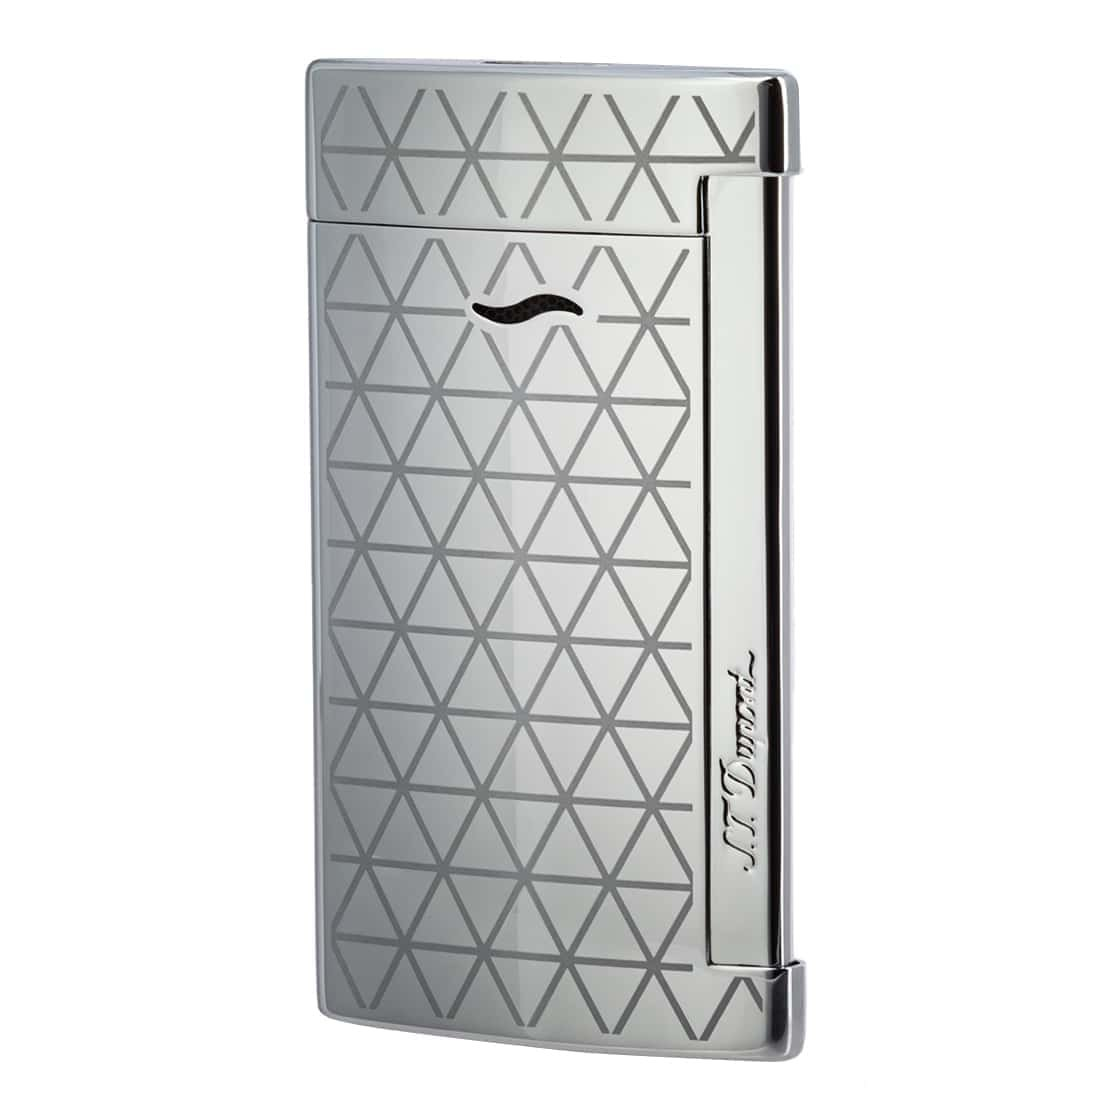 S.T. Dupont chrome firehead slim 7 lighter by S.T. Dupont (Image #1)